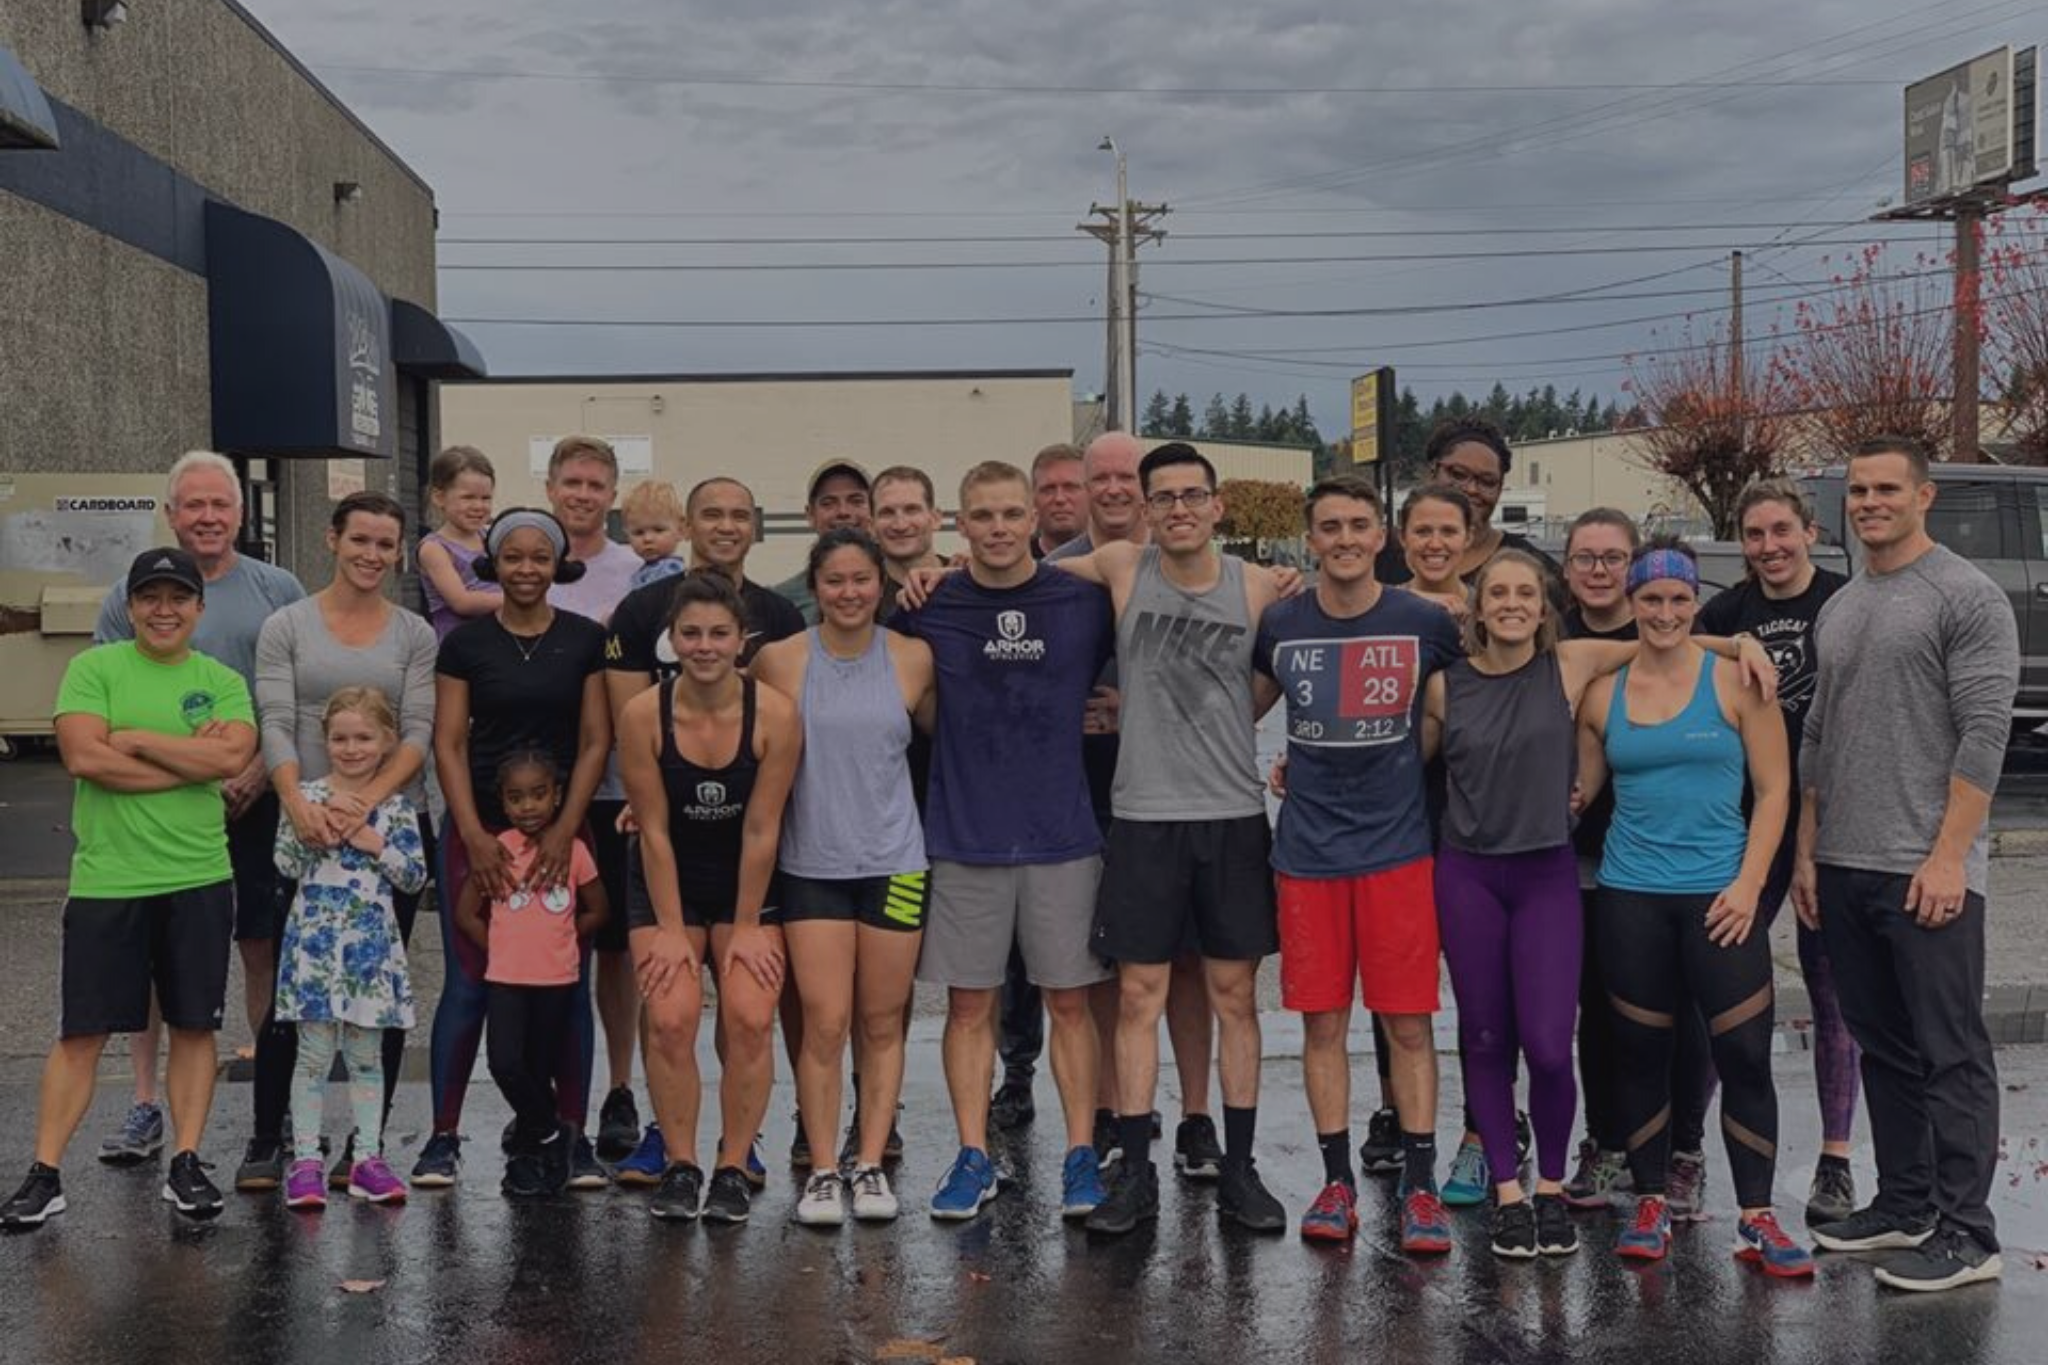 community, hero workout, teamwork, high five, teamwork, crossfit, class, training, workout, fitness, health, coaching, gym, tacoma